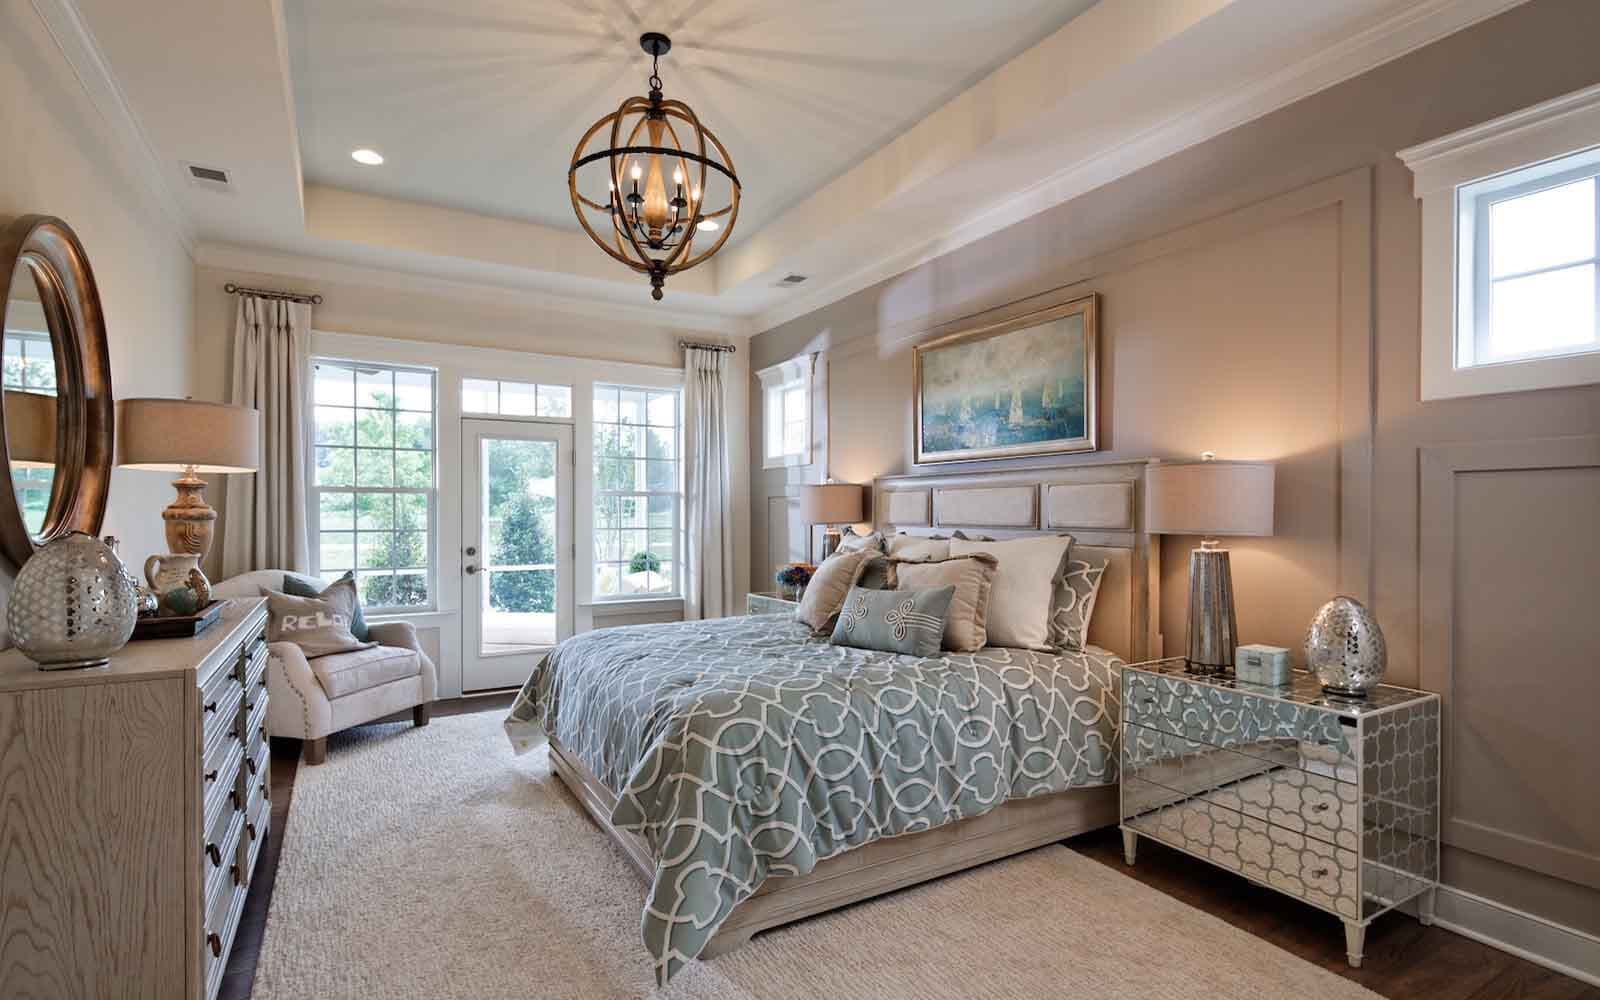 Pearson-owners-bedroom-single-family-homes-easton-md-easton-village-brookfield-residential